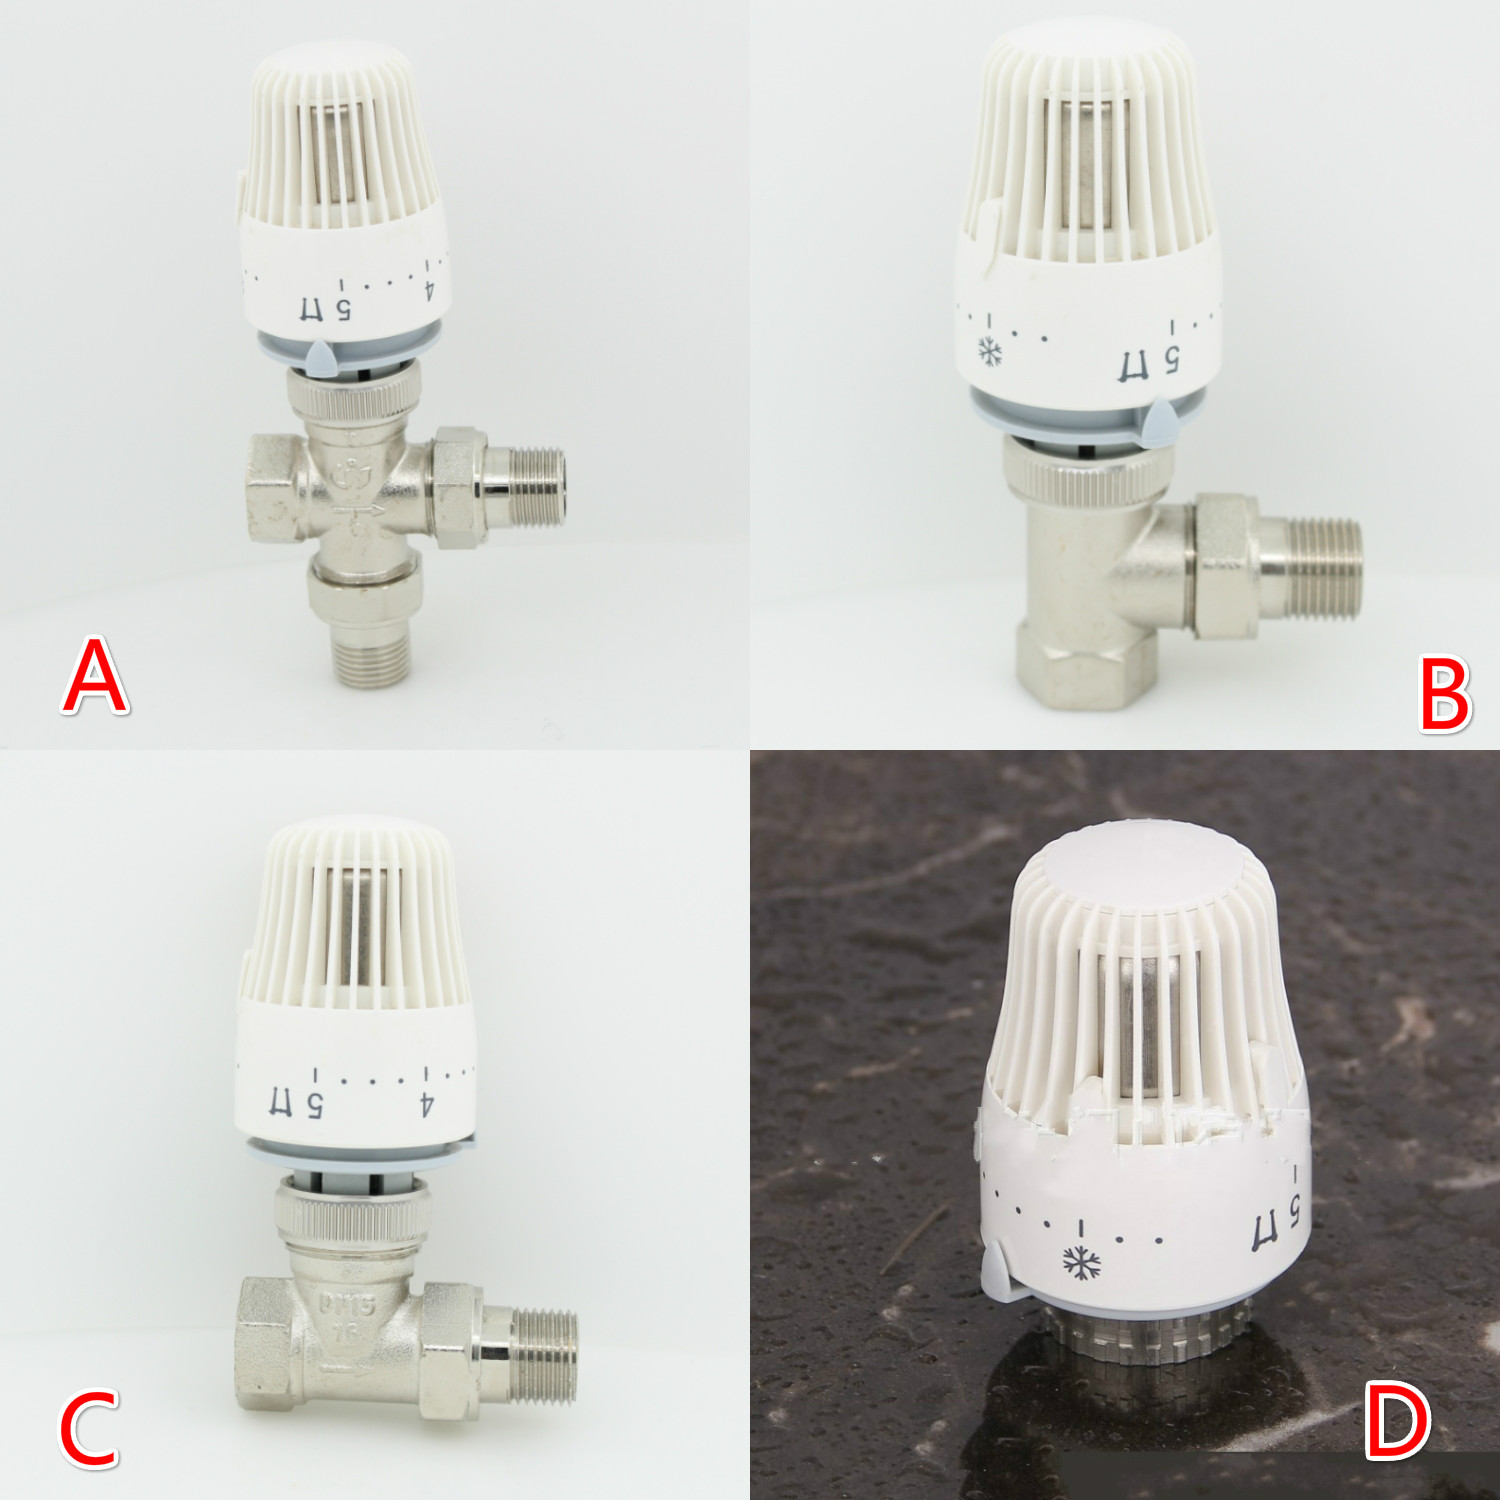 Thermostatic Radiator Brass  Valve DN15 DN20 DN25  Floor Heating System Thermostatic Radiator Valve Head